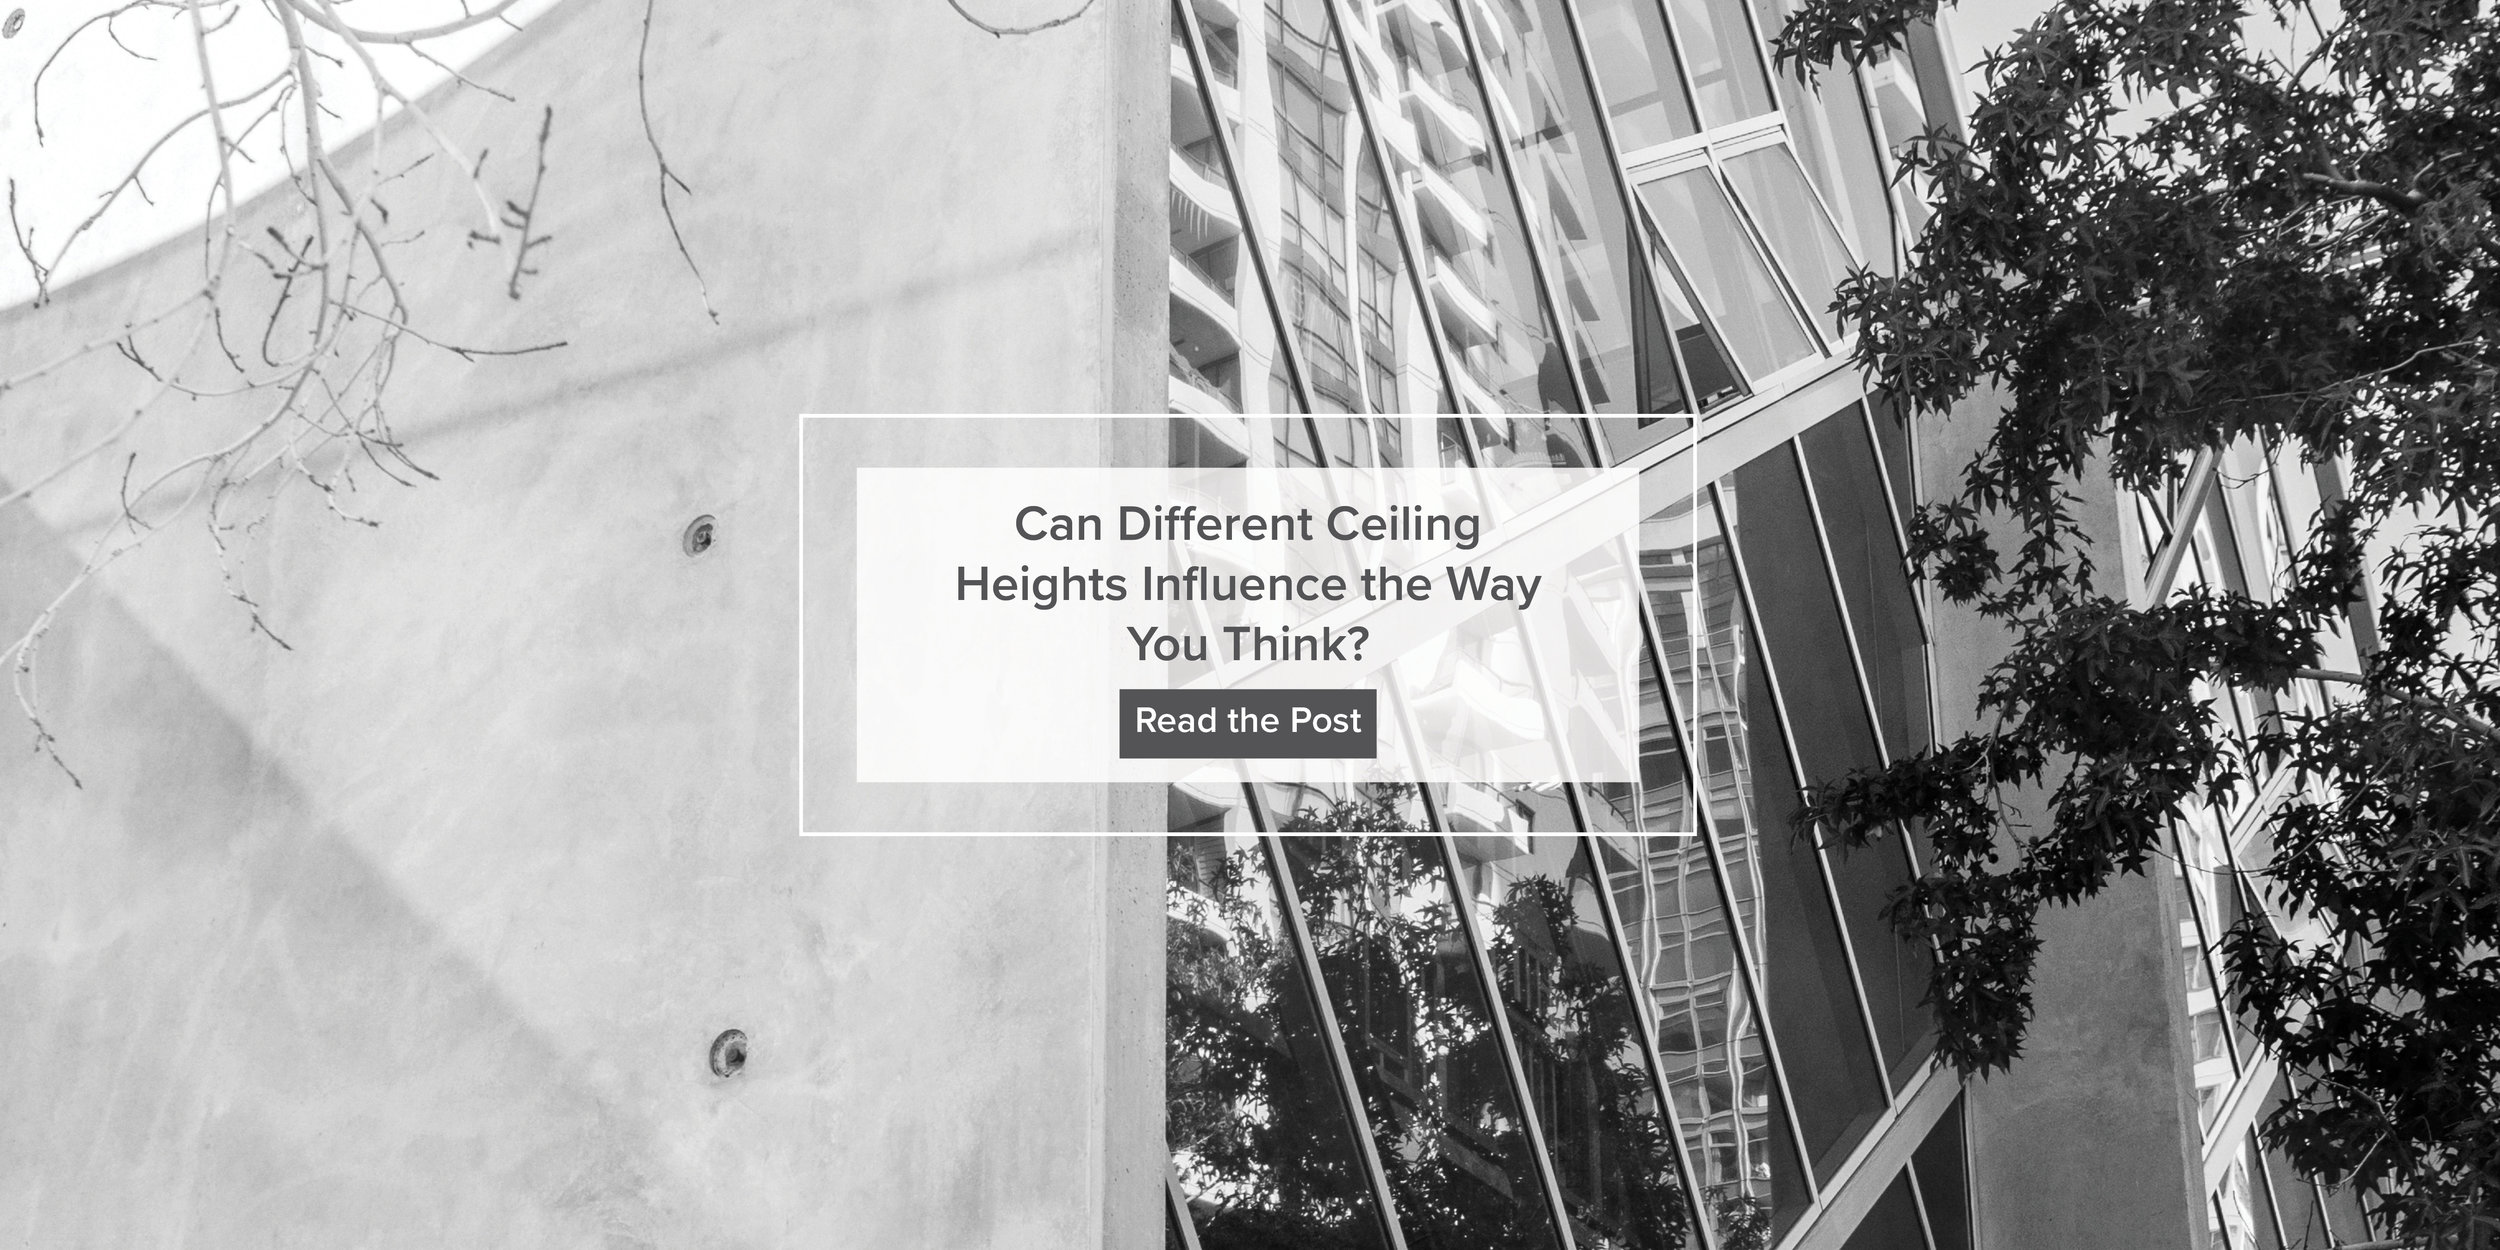 Ceiling heights 9x18.jpg